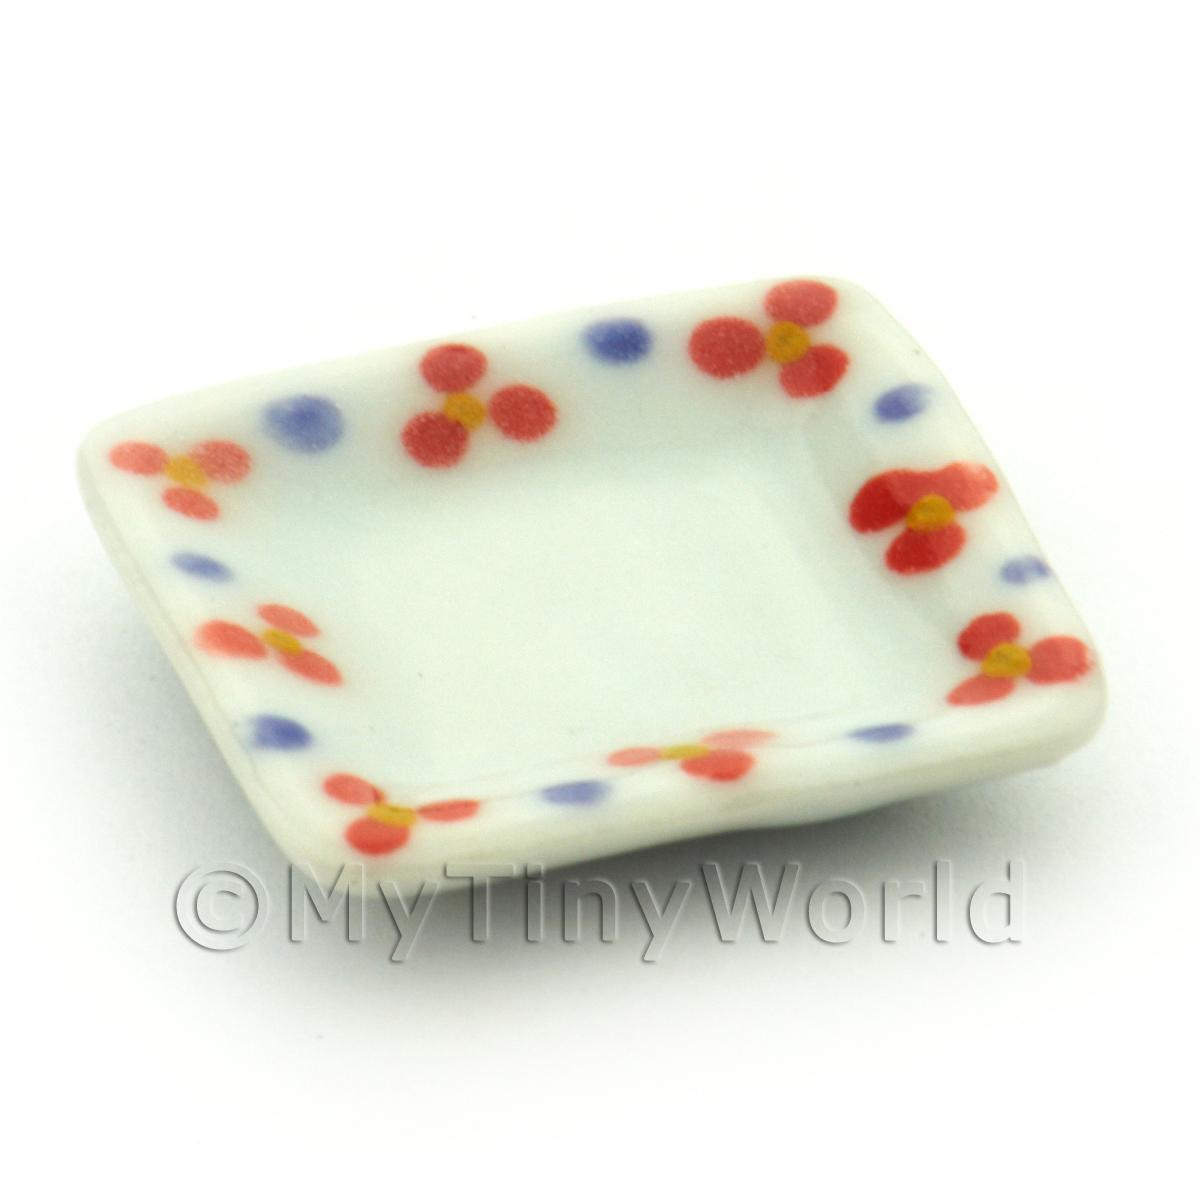 Dolls House Miniature Flower Design 21mm Ceramic Square Plate